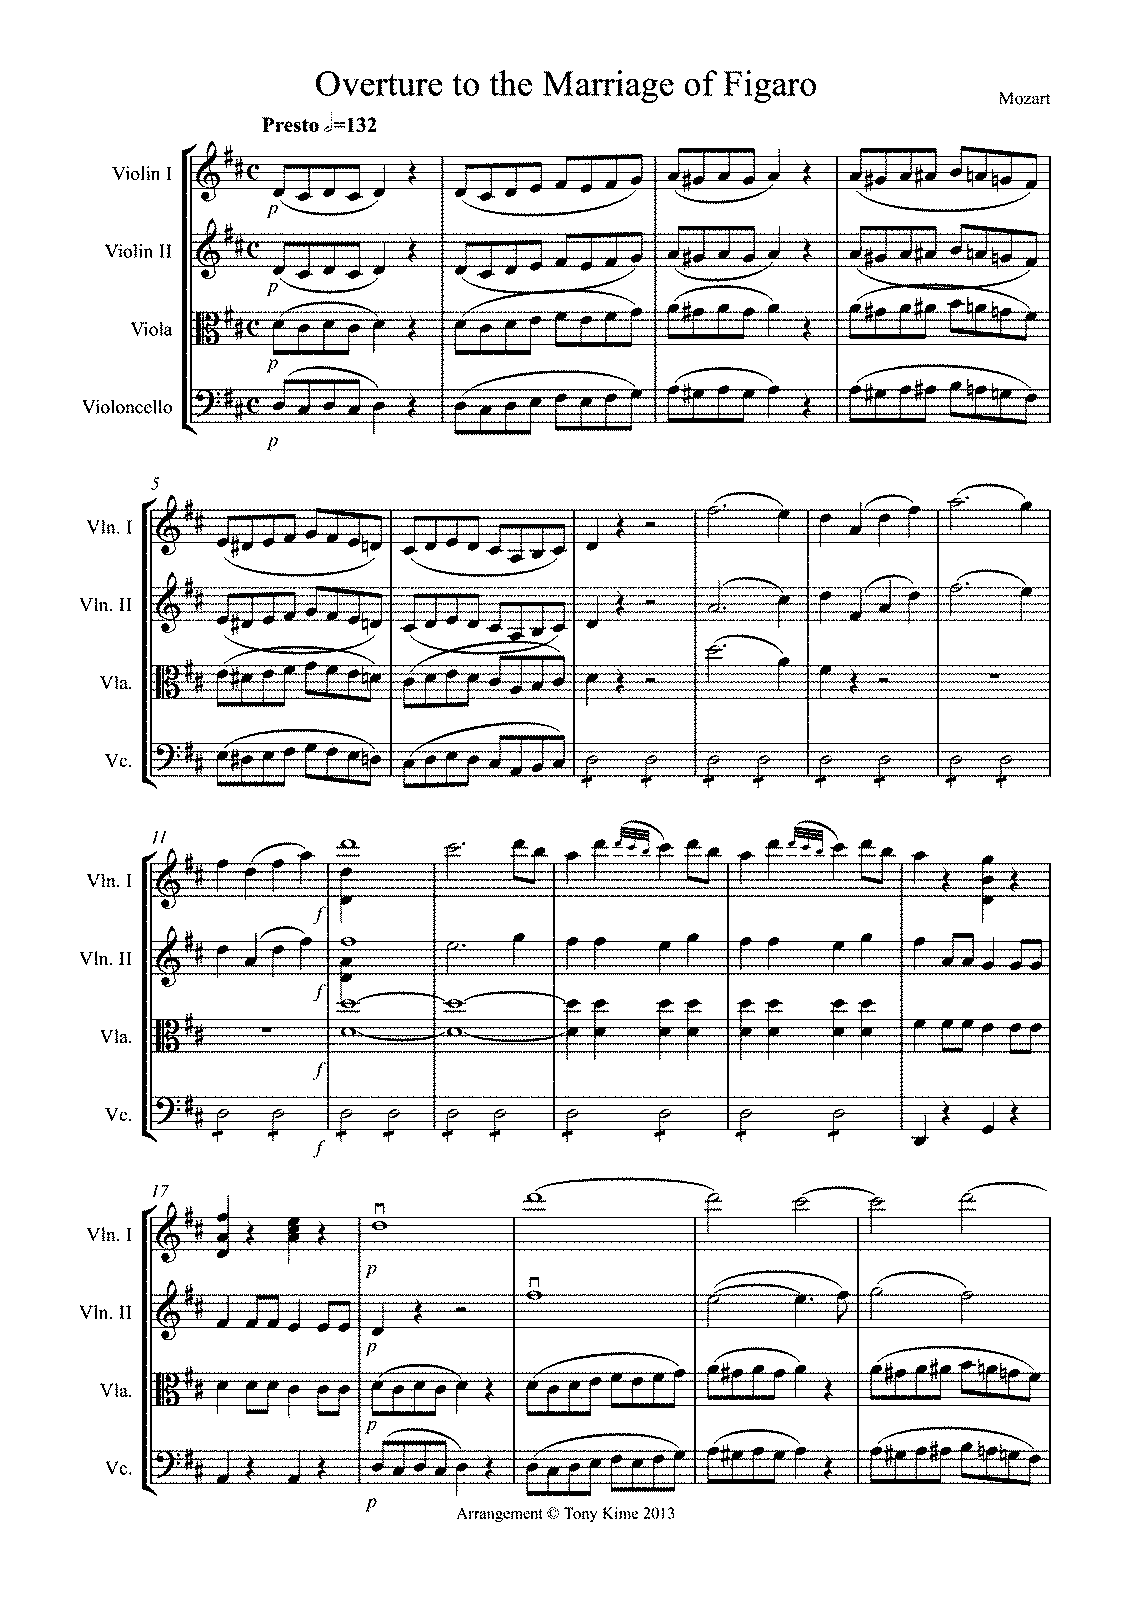 PMLP03845-Overture to the Marriage of Figaro - Full Score.pdf